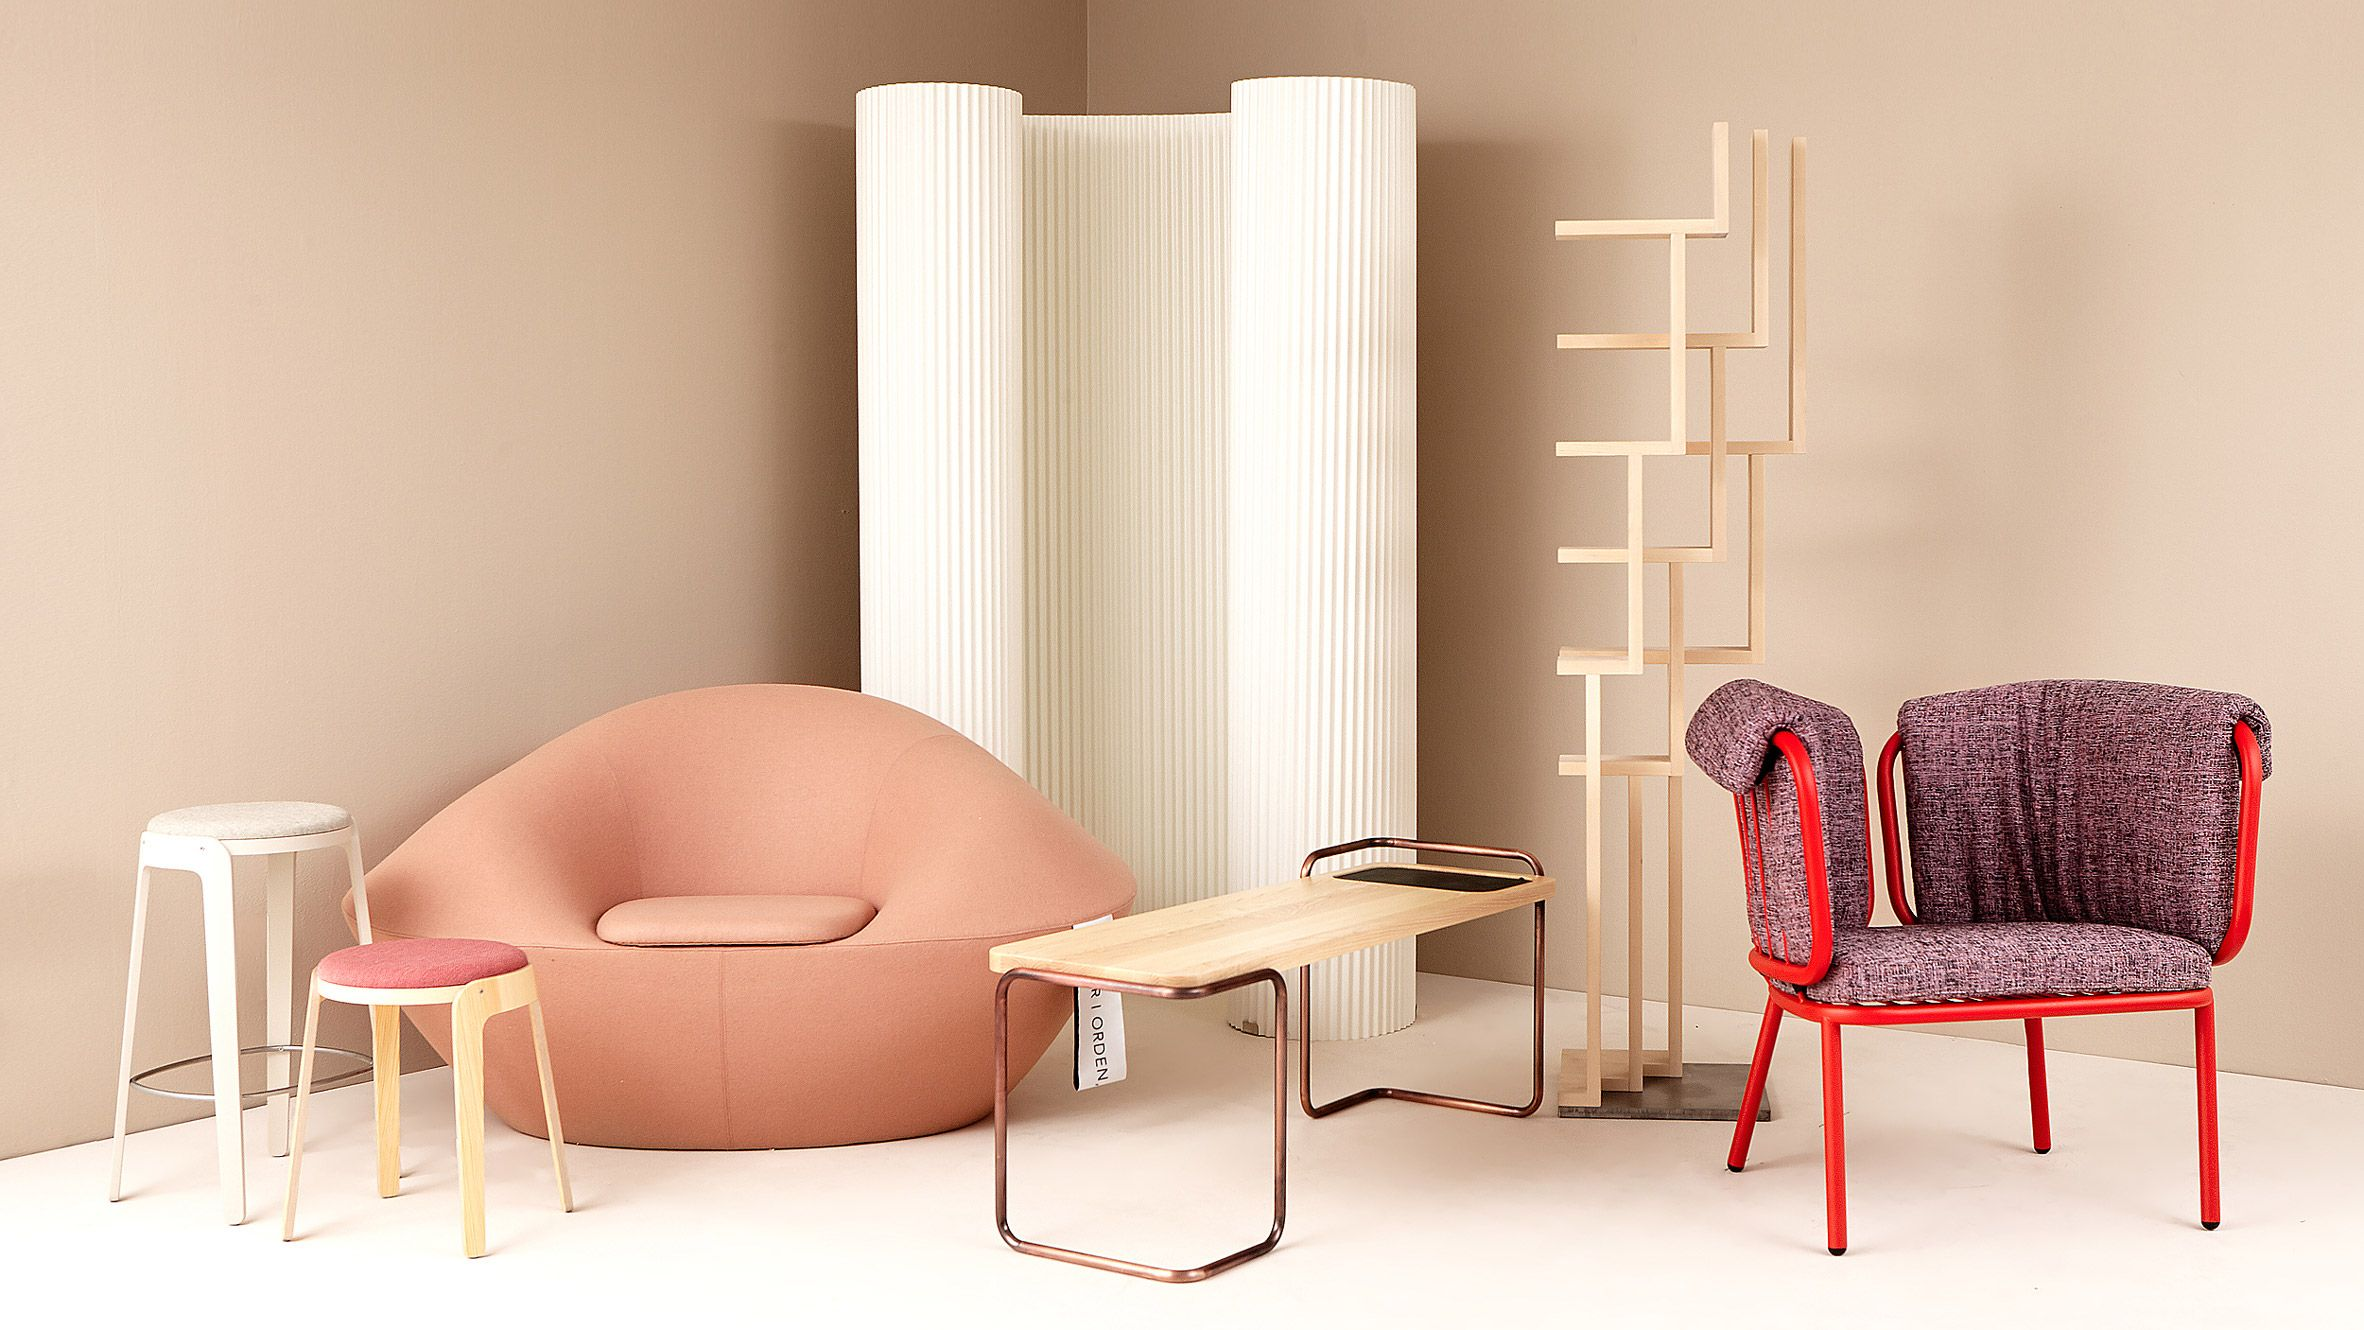 Students From Beckmans College Of Design In Stockholm Have Created